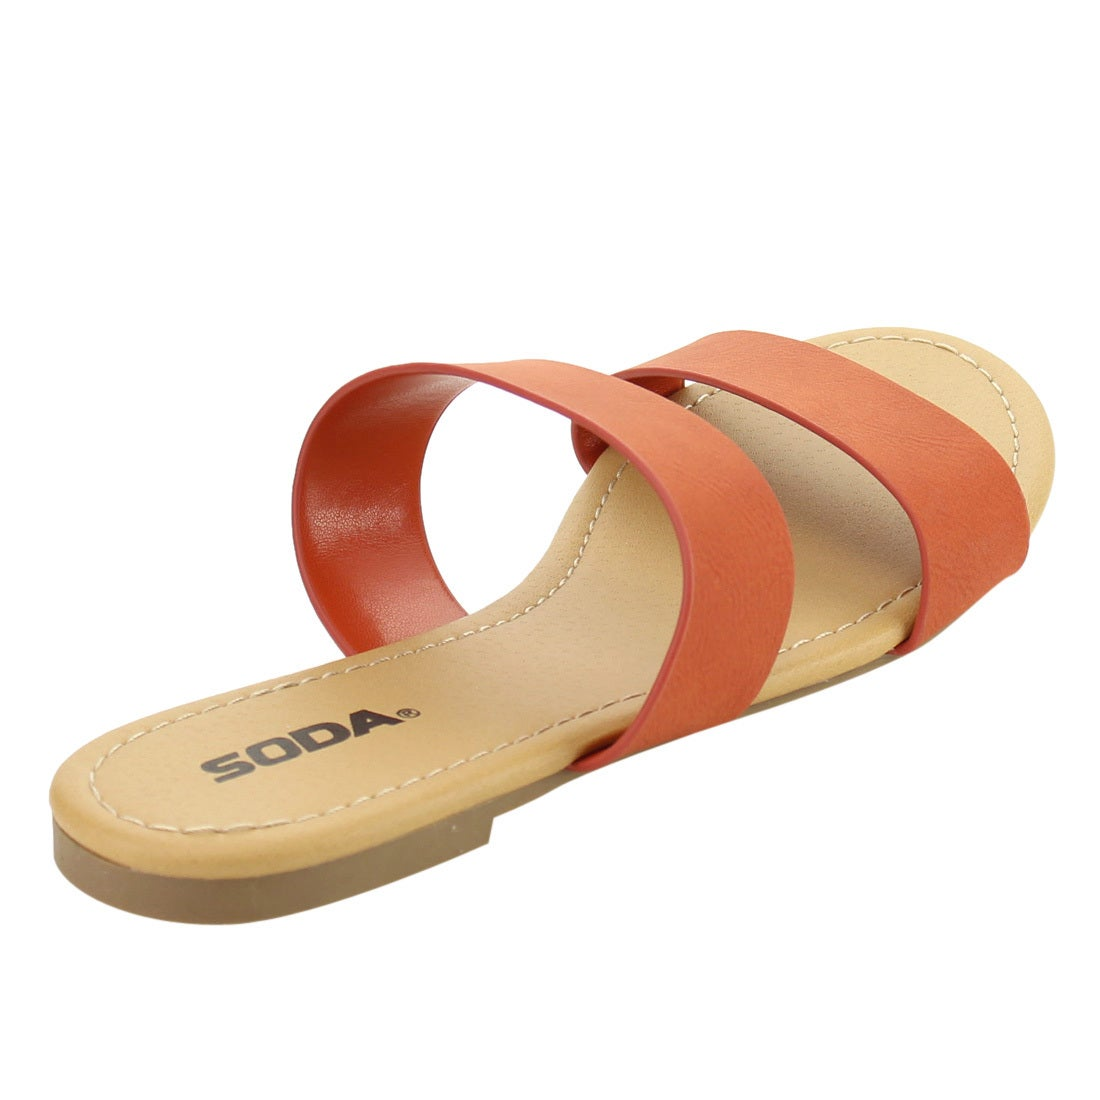 15c8a35b7 Shop Soda IF10 Women s Double Strap Slide In Flat Beach Sandals - Free  Shipping On Orders Over  45 - Overstock - 15894284